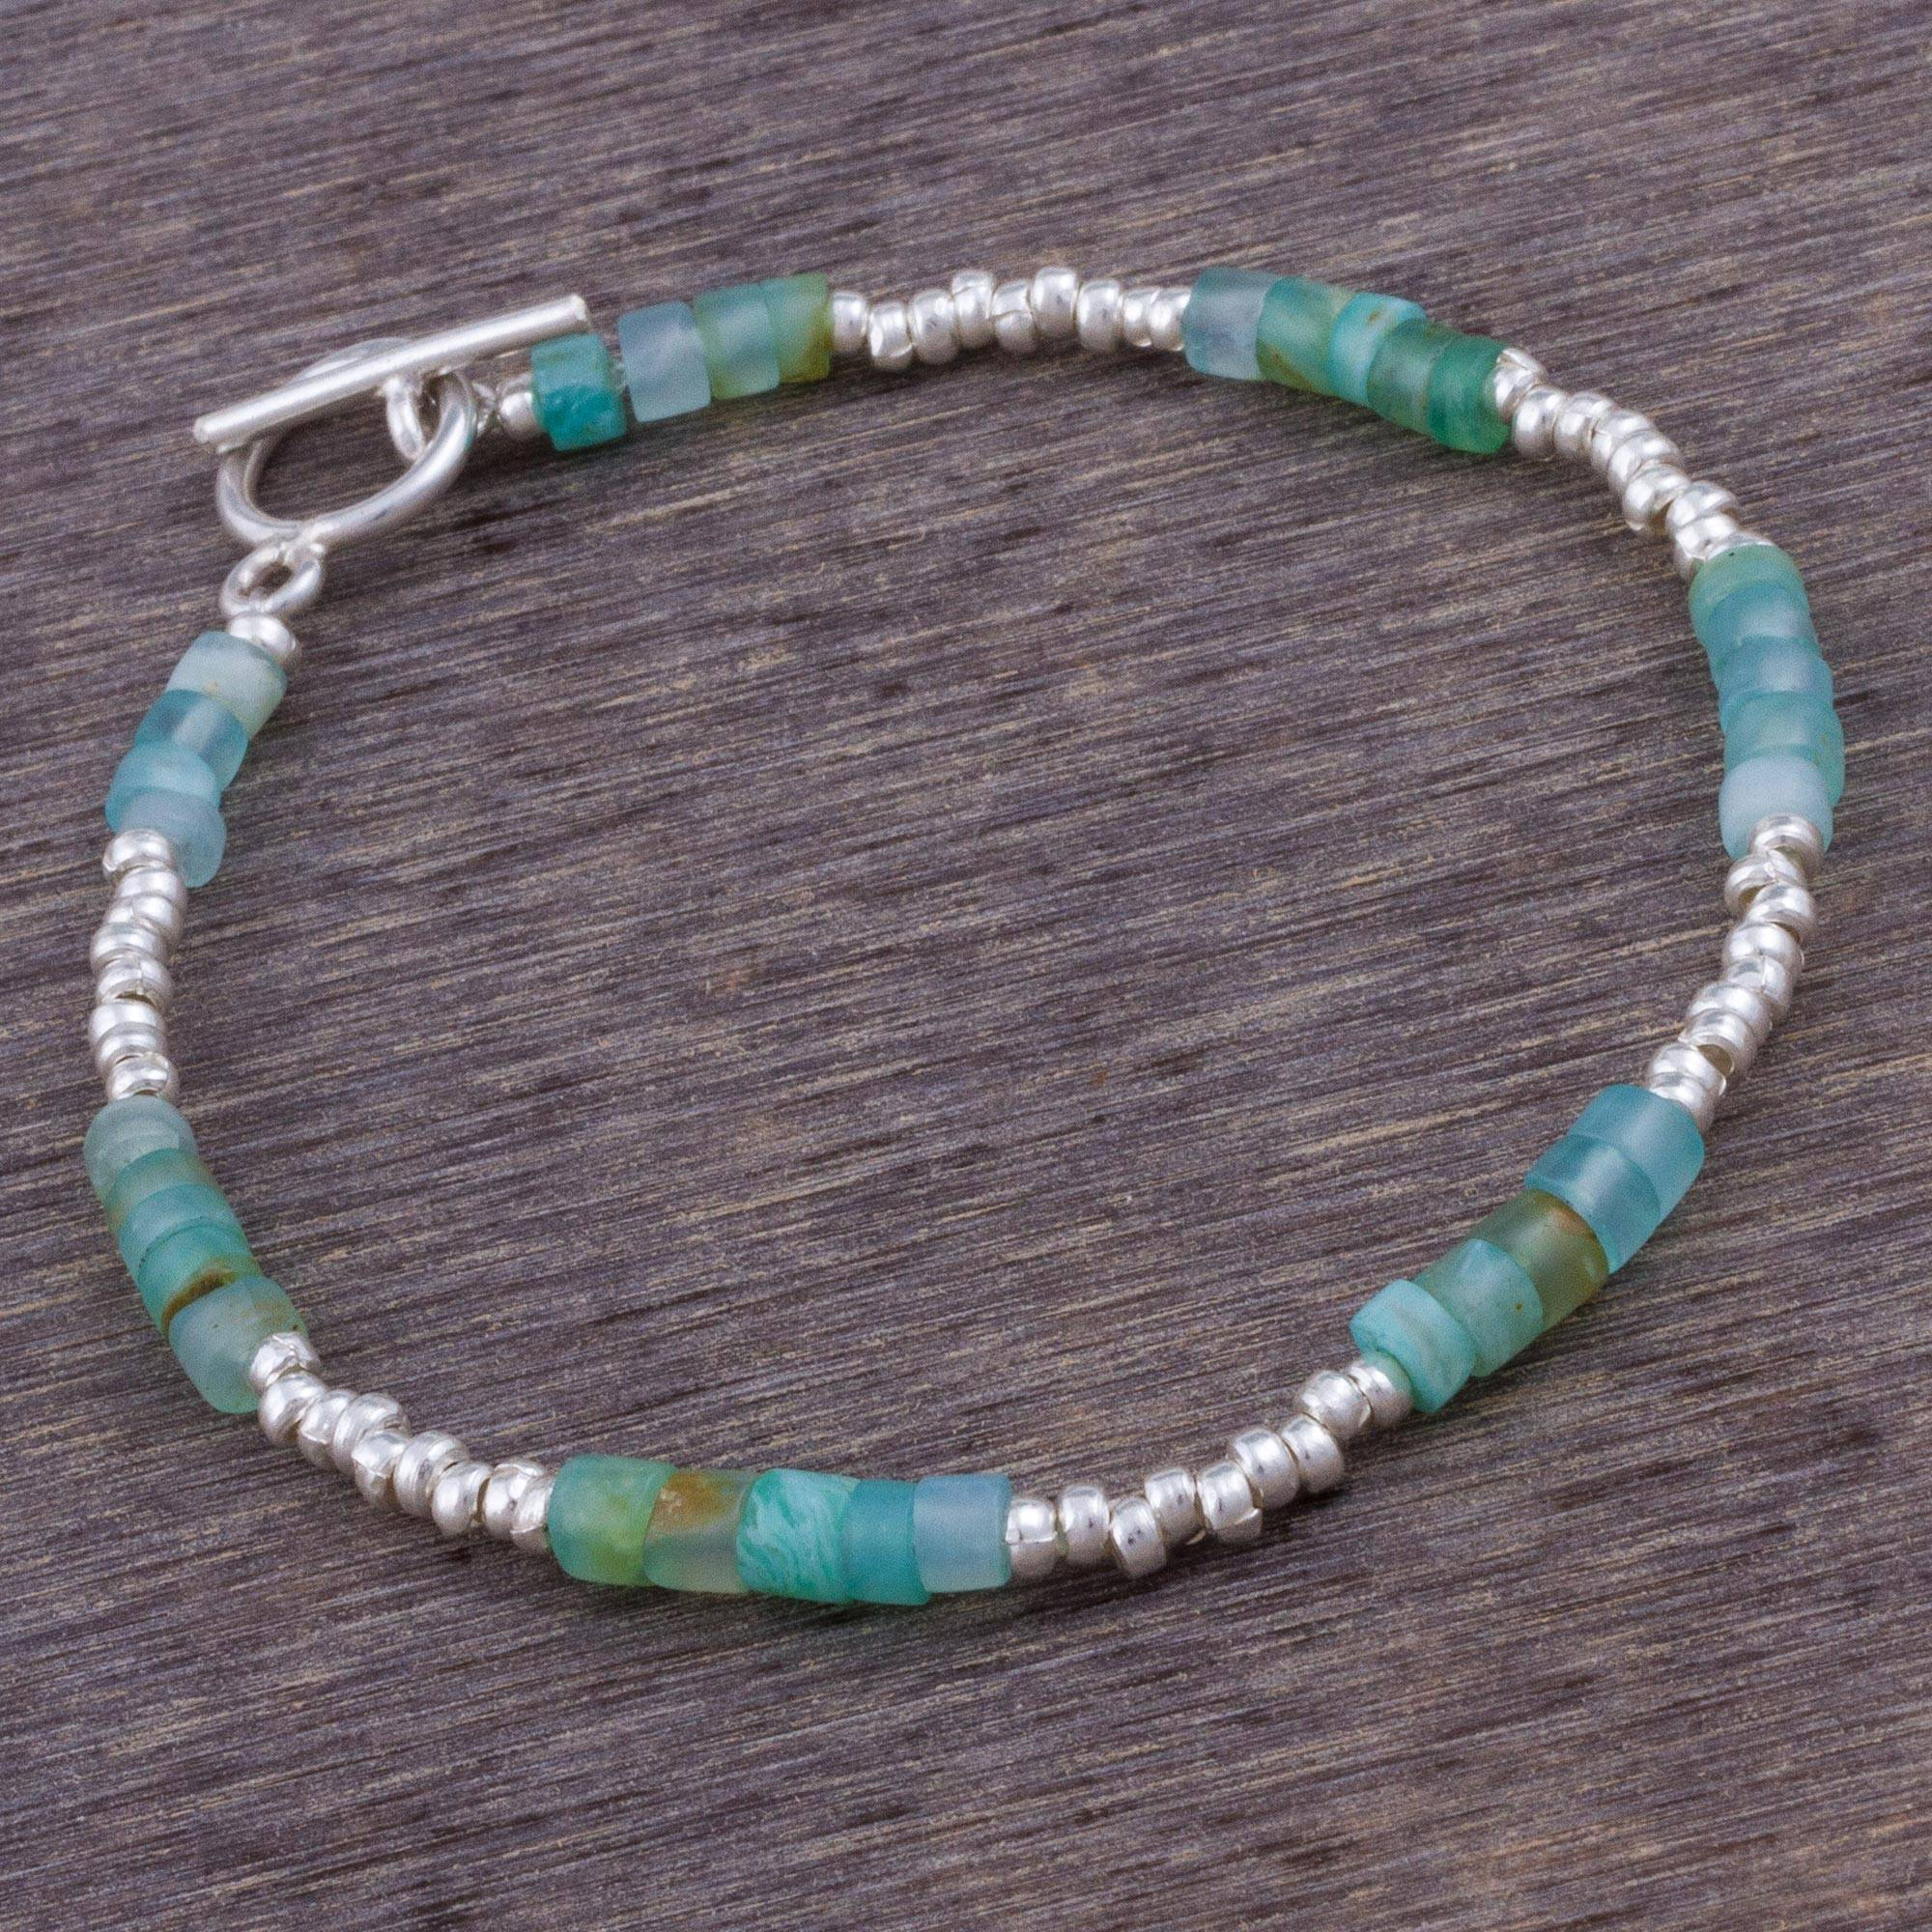 Stylish Teal Opal and Sterling Silver Beaded Bracelet from Peru